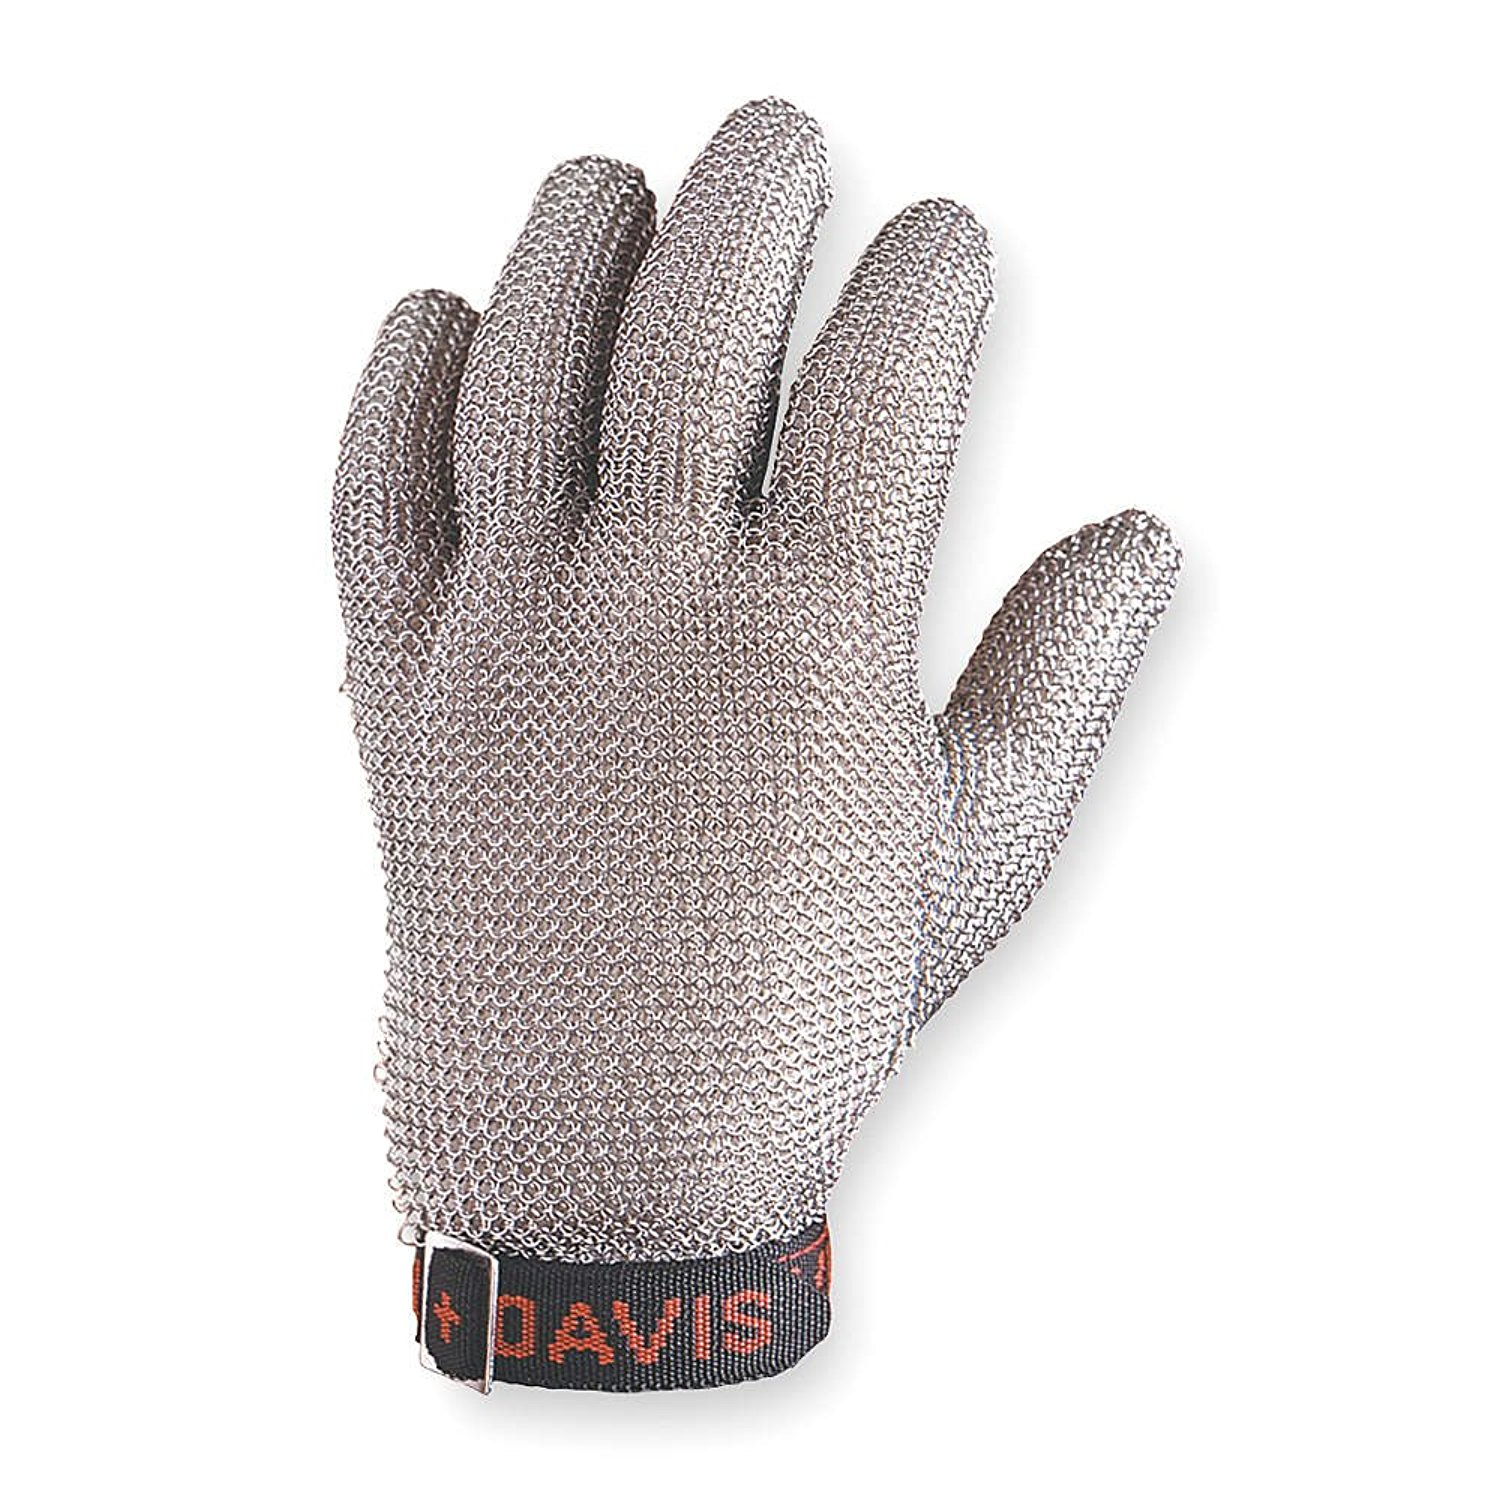 Honeywell Whiting & Davis Gray Large Stainless Steel Mesh Cut-Resistant Gloves - Uncoated - A515L D [PRICE is per EACH]